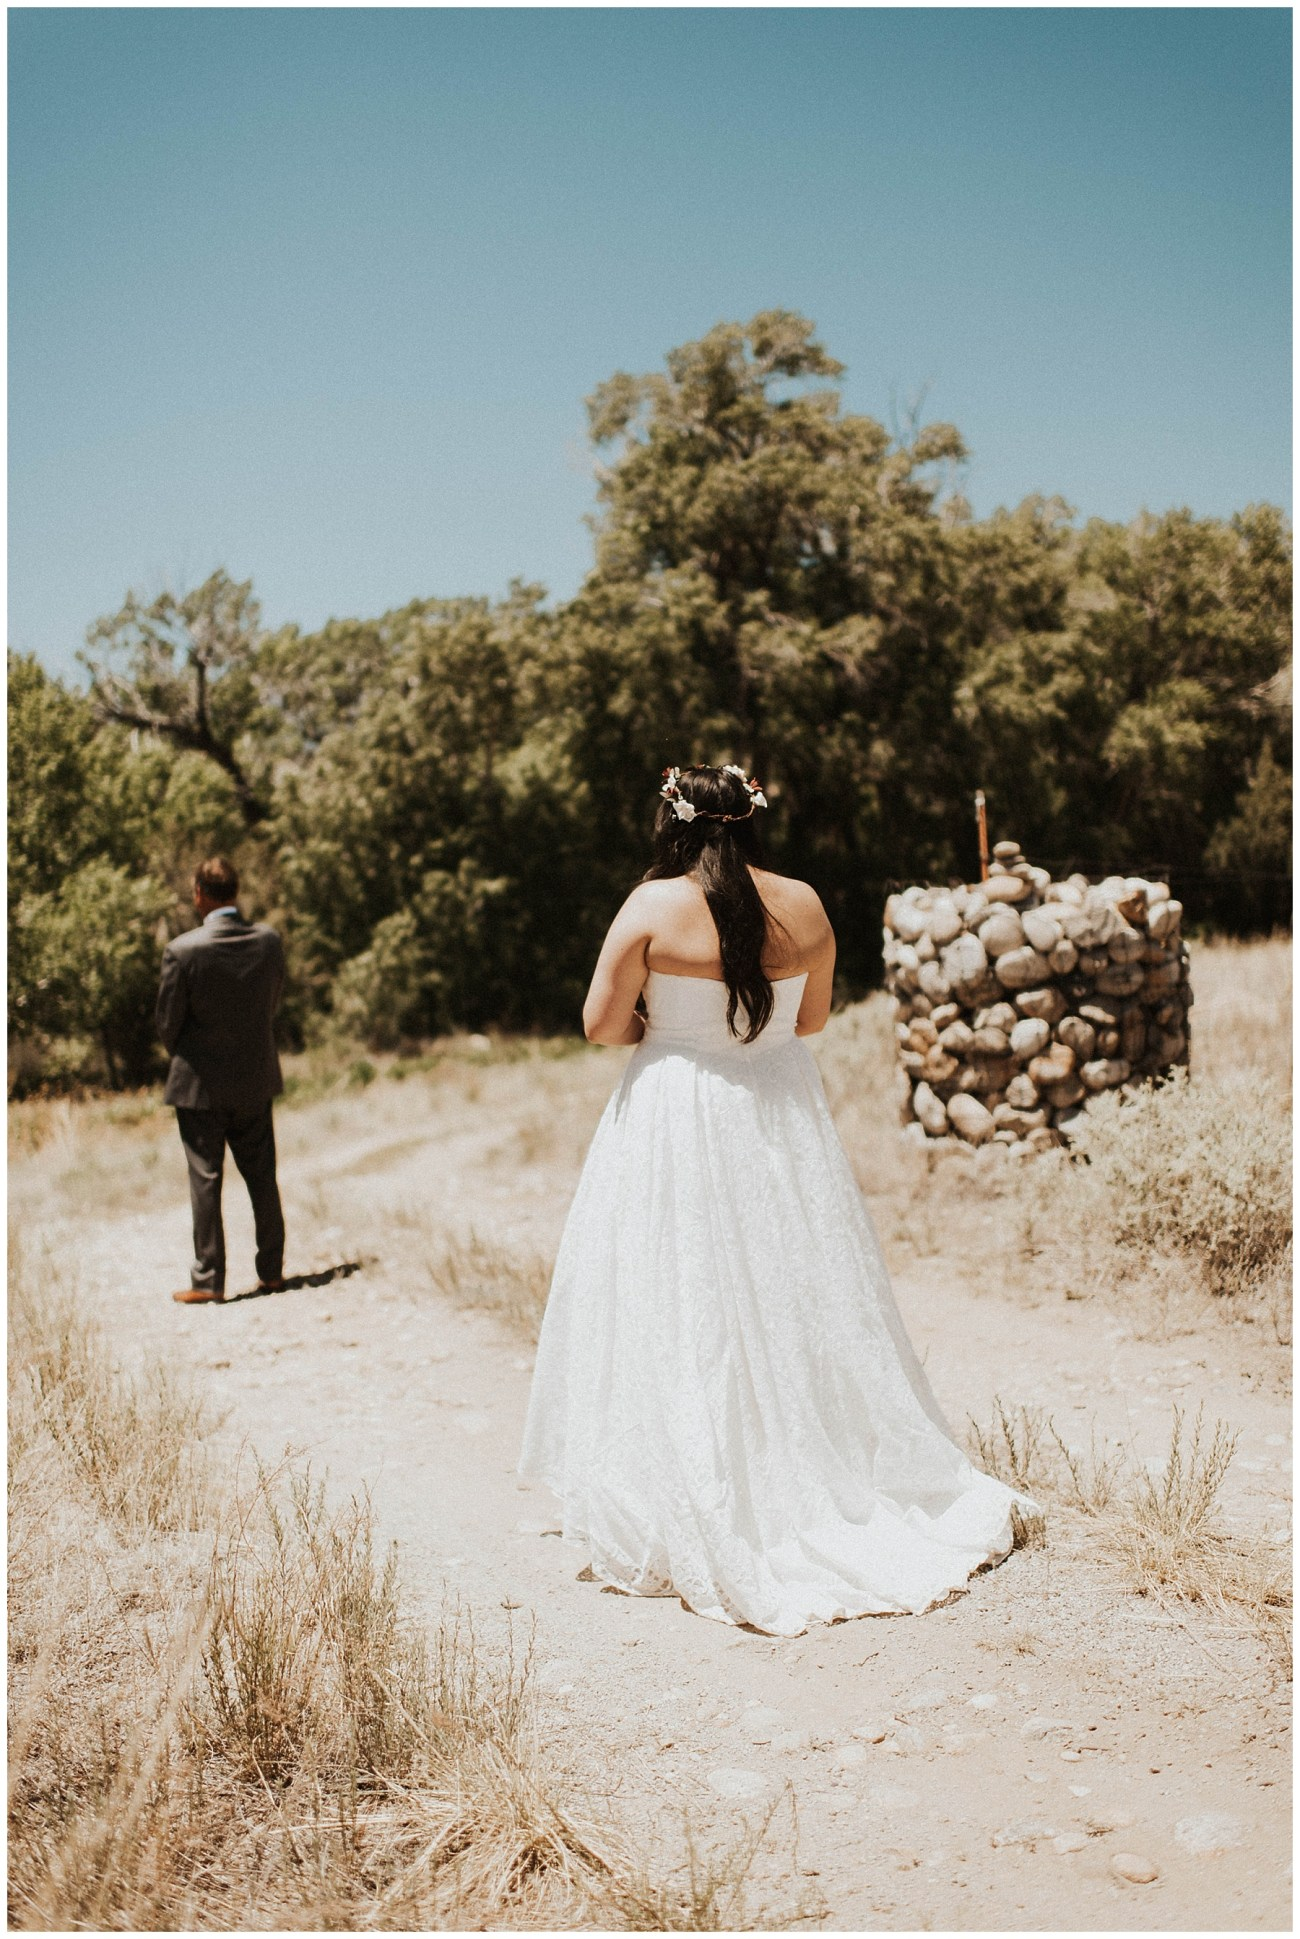 Ben + Lainee    Desert Colorado Wedding – Lauren F.otography 5502b9291